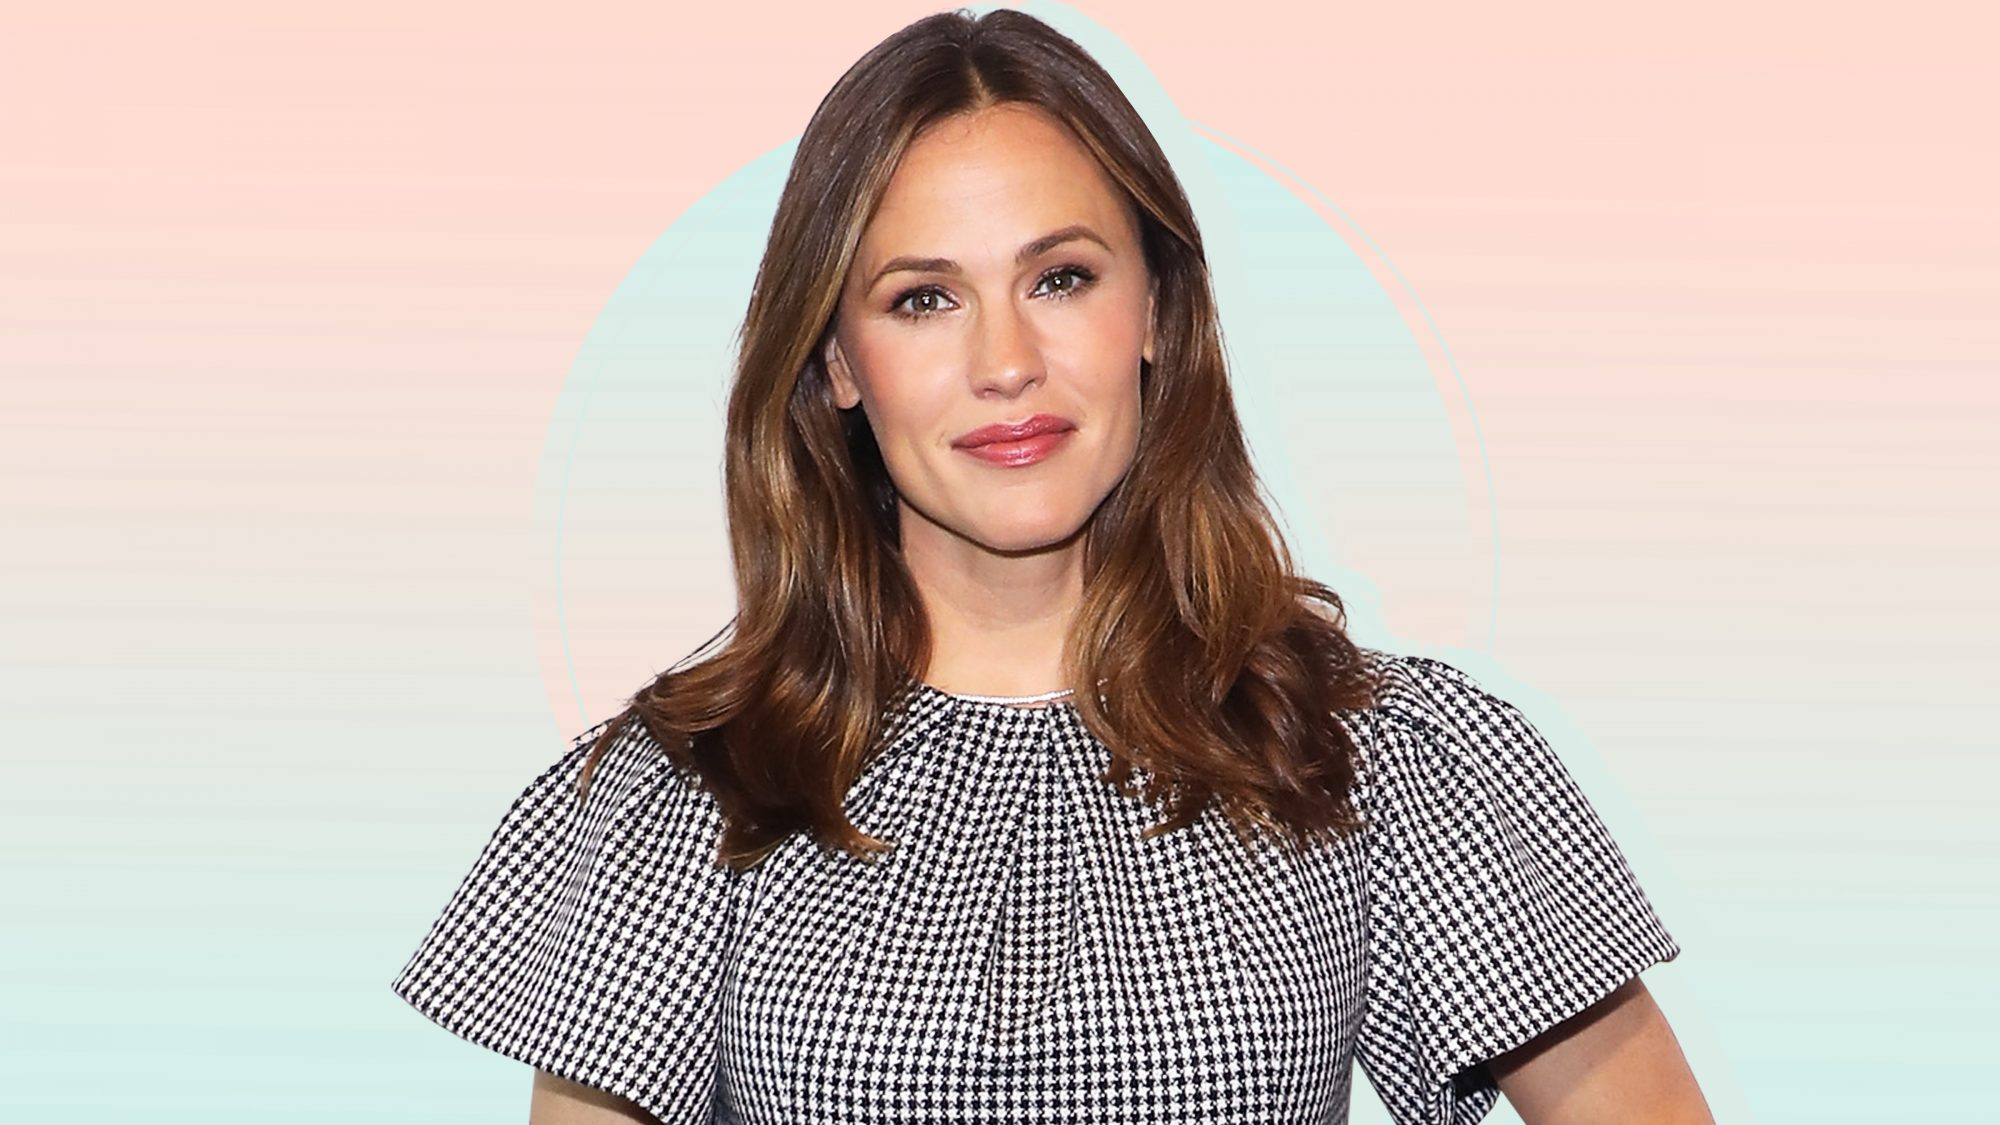 Jennifer-Garner's-Go-To-Fall-Face-Masks-Have-Sold-Out-15-Times-But-They're-In-Stock-Now-GettyImages-1156841111